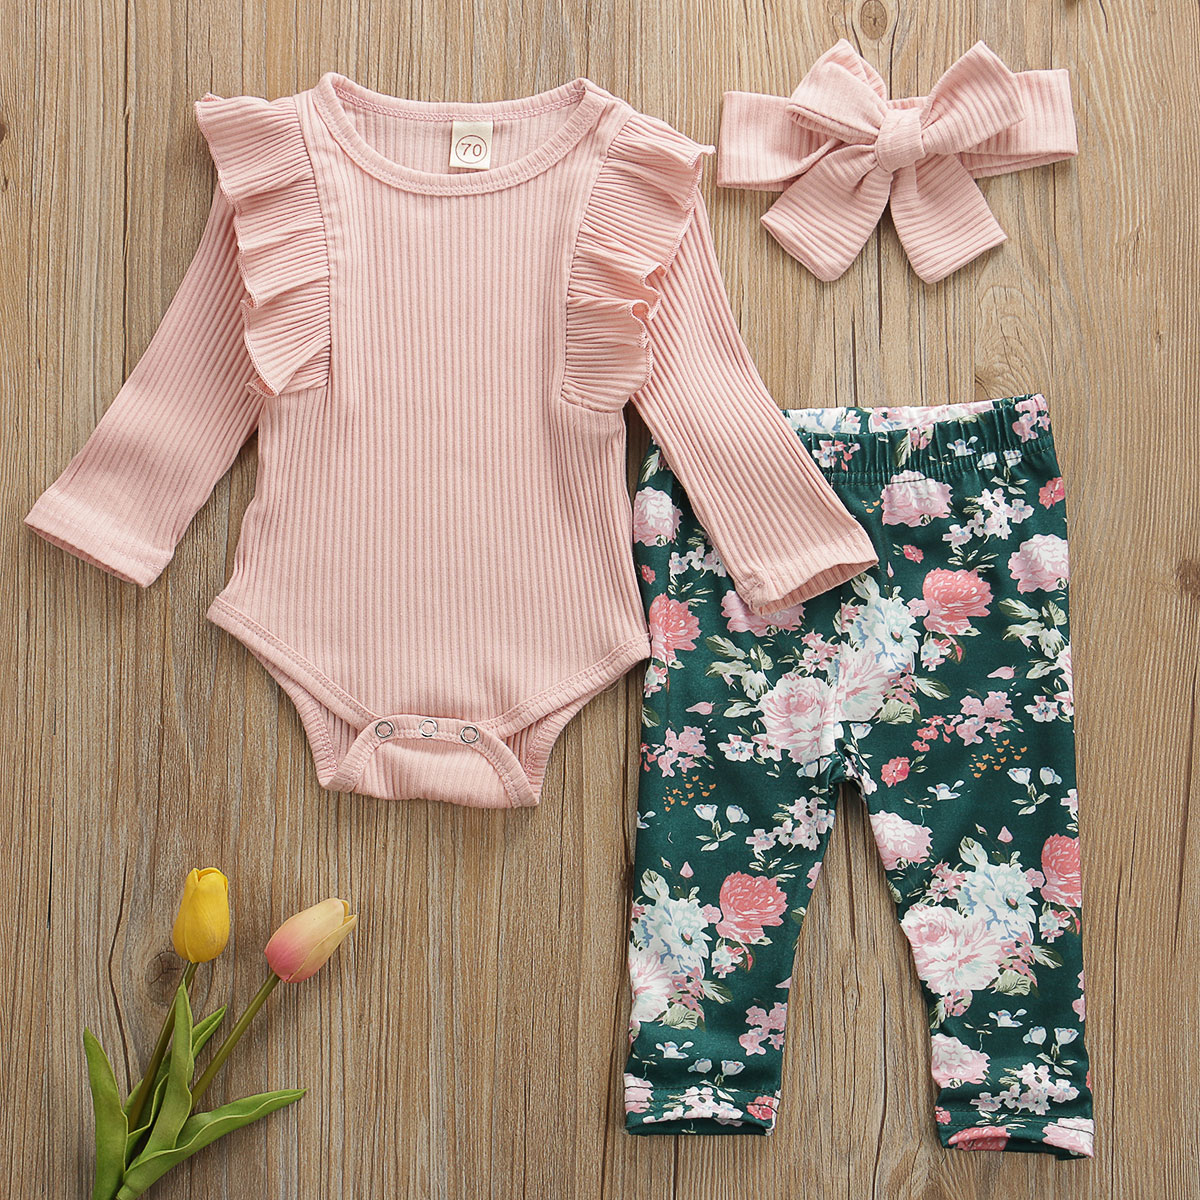 Pudcoco Newborn Baby Girl Clothes Solid Color Knitted Cotton Romper Tops Flower Print Long Pants Headband 3Pcs Outfits Clothes